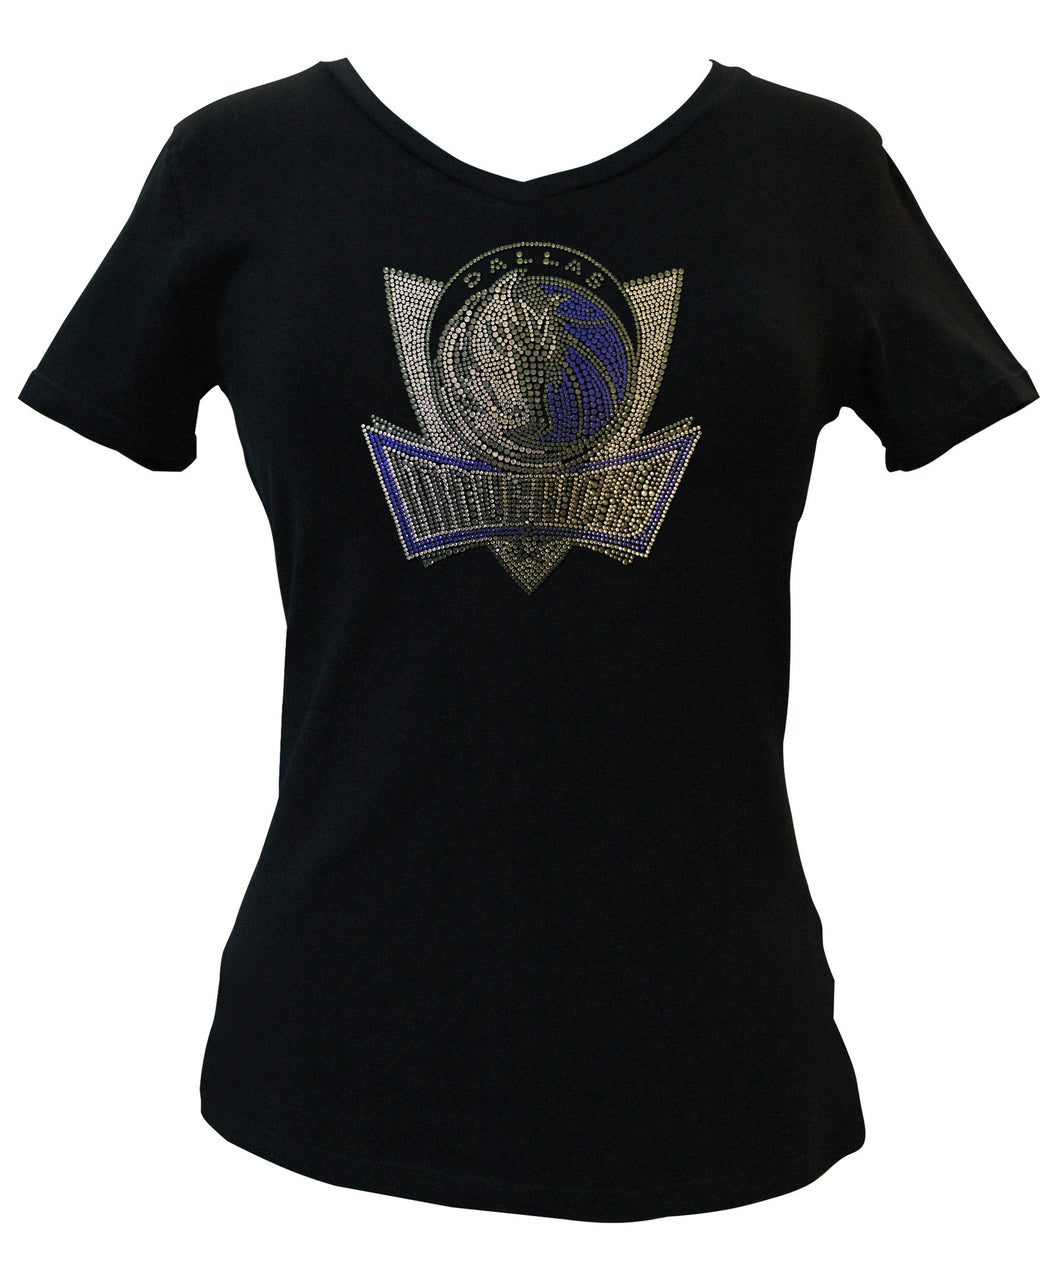 Official Dallas Mavericks Rhinestone V-Neck Tee